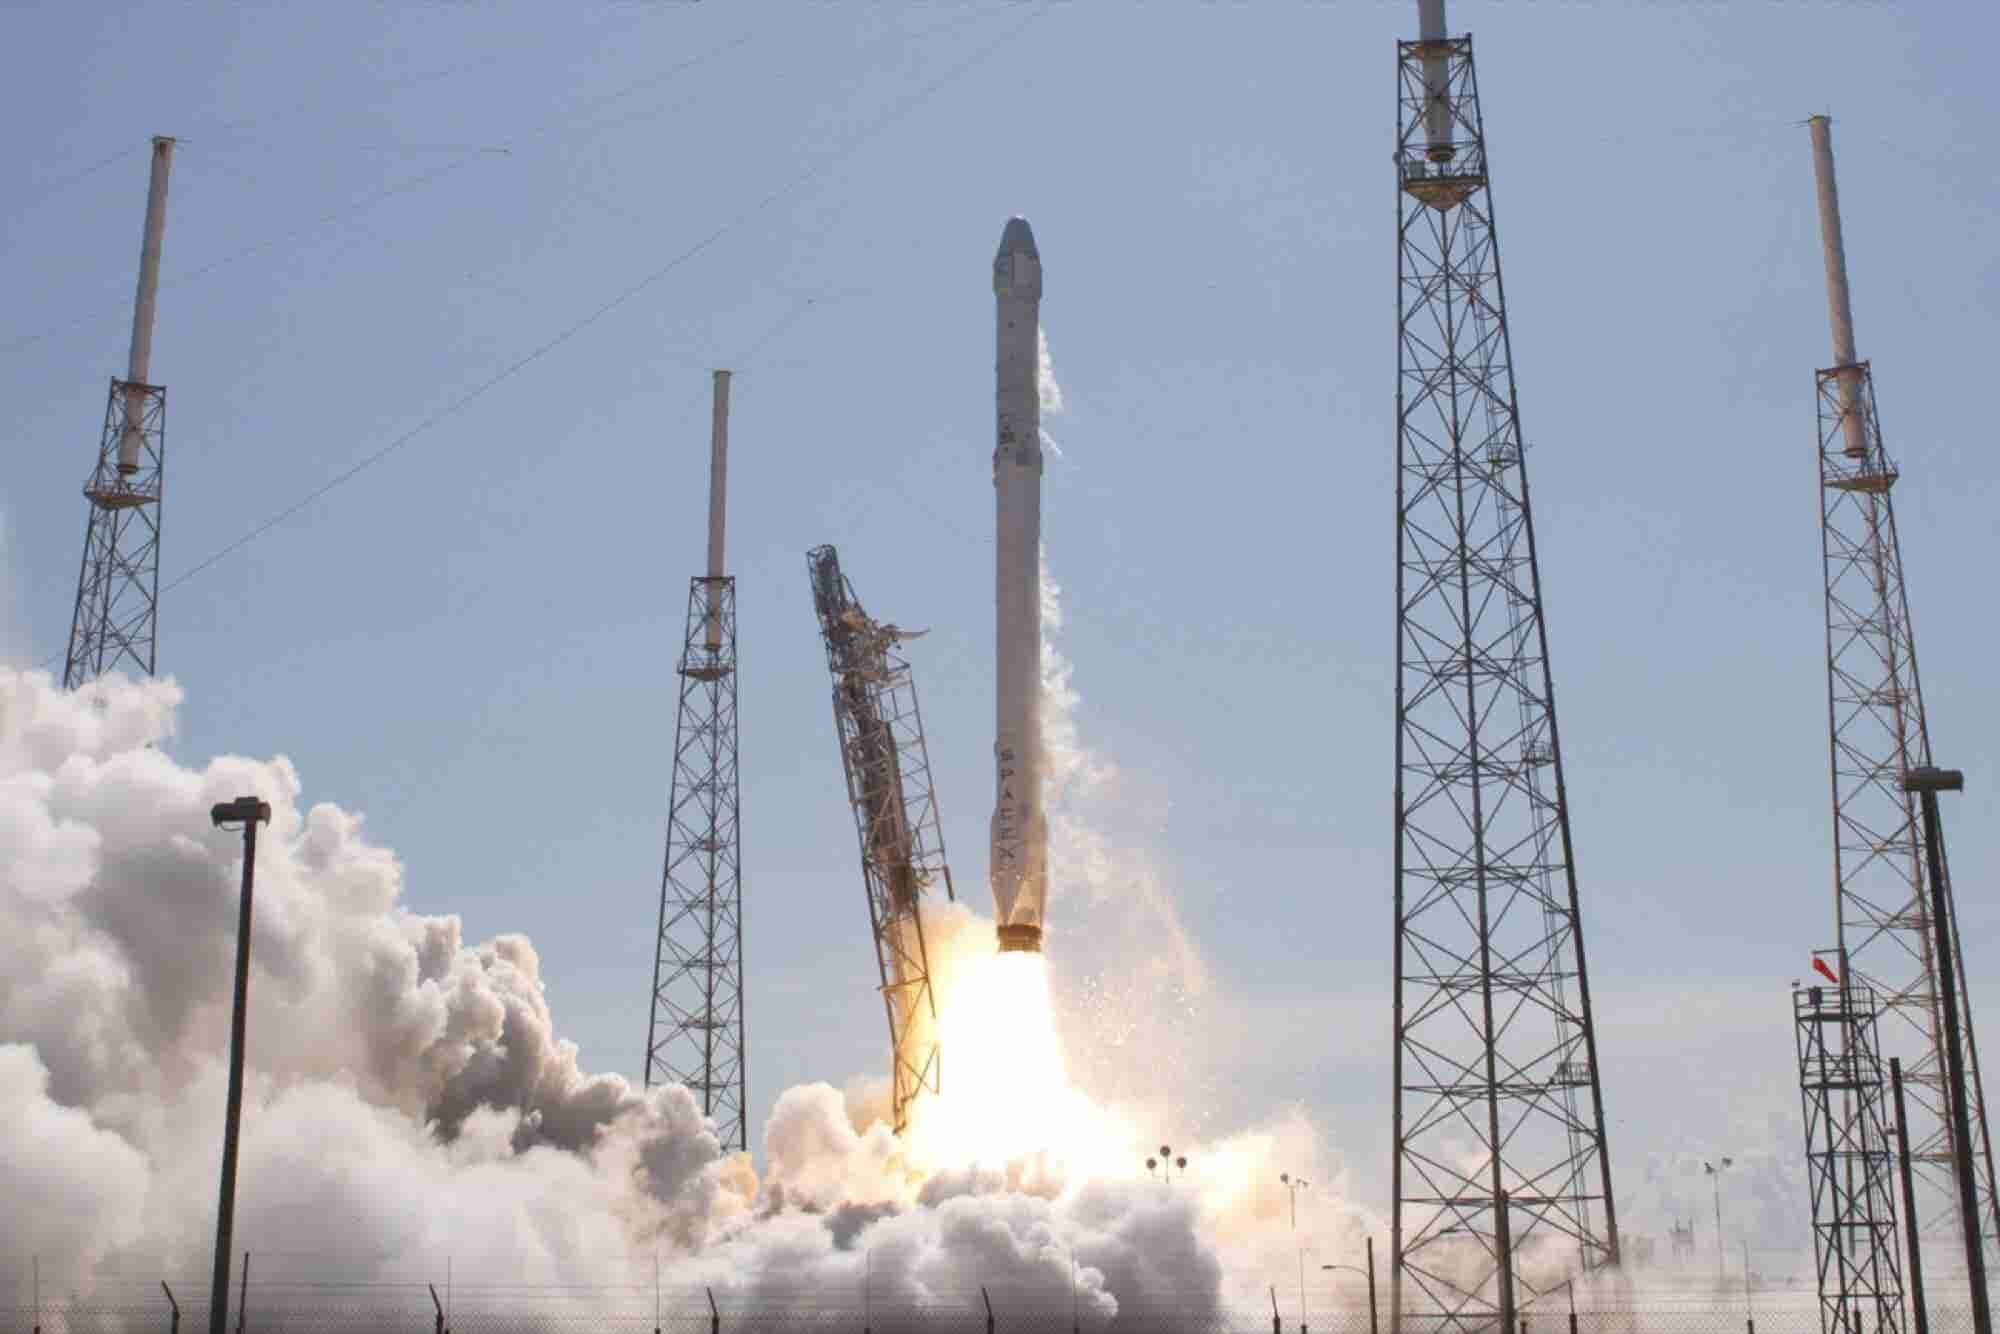 NASA Is Concerned About SpaceX's Rocket Fueling Practices